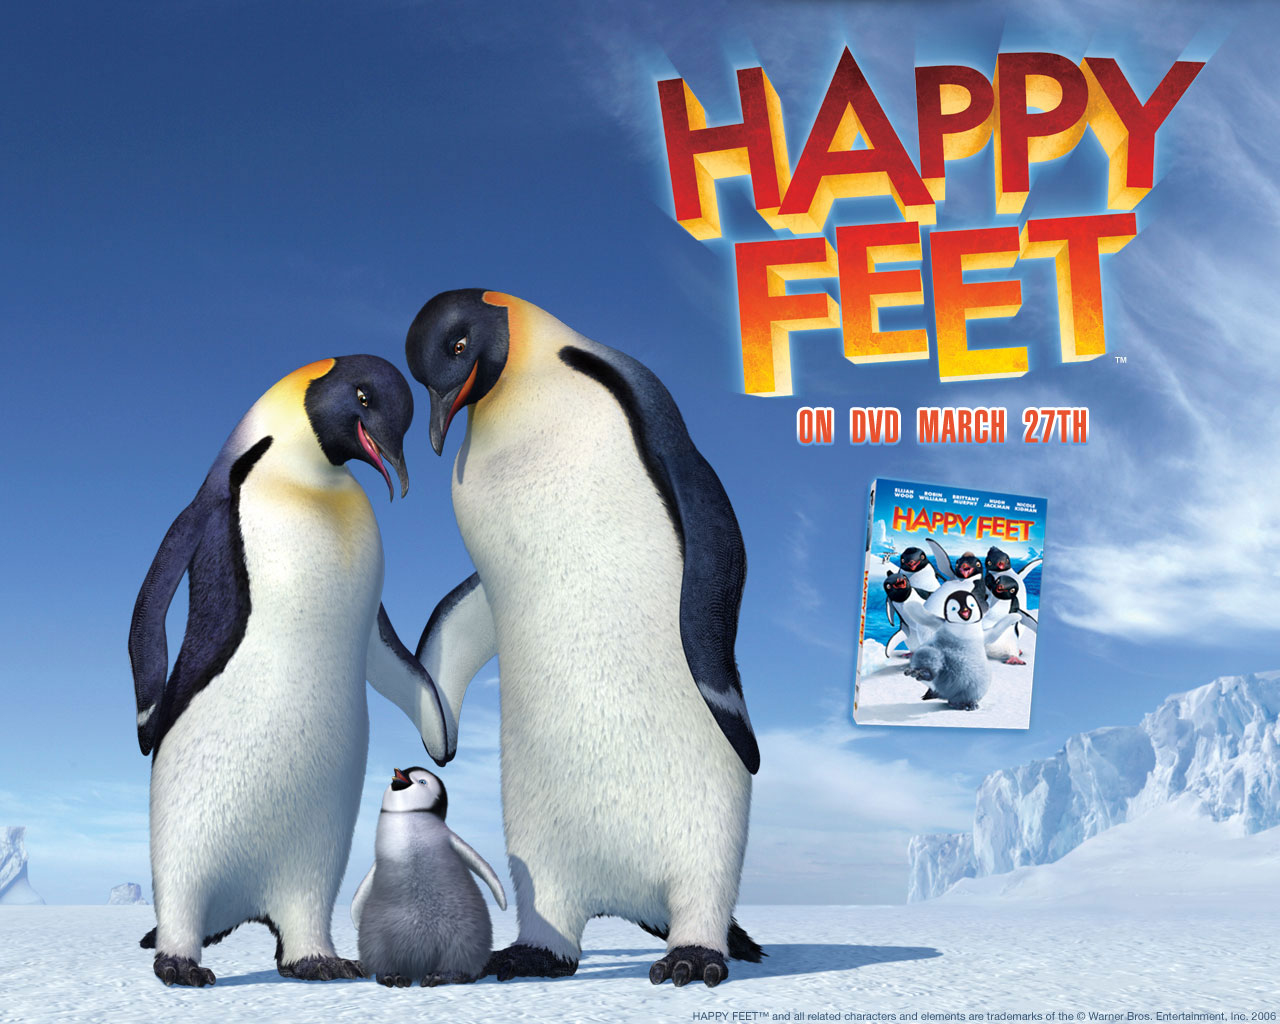 Uncategorized Lovelace Happy Feet memphis happy feet wiki fandom powered by wikia and norma jean